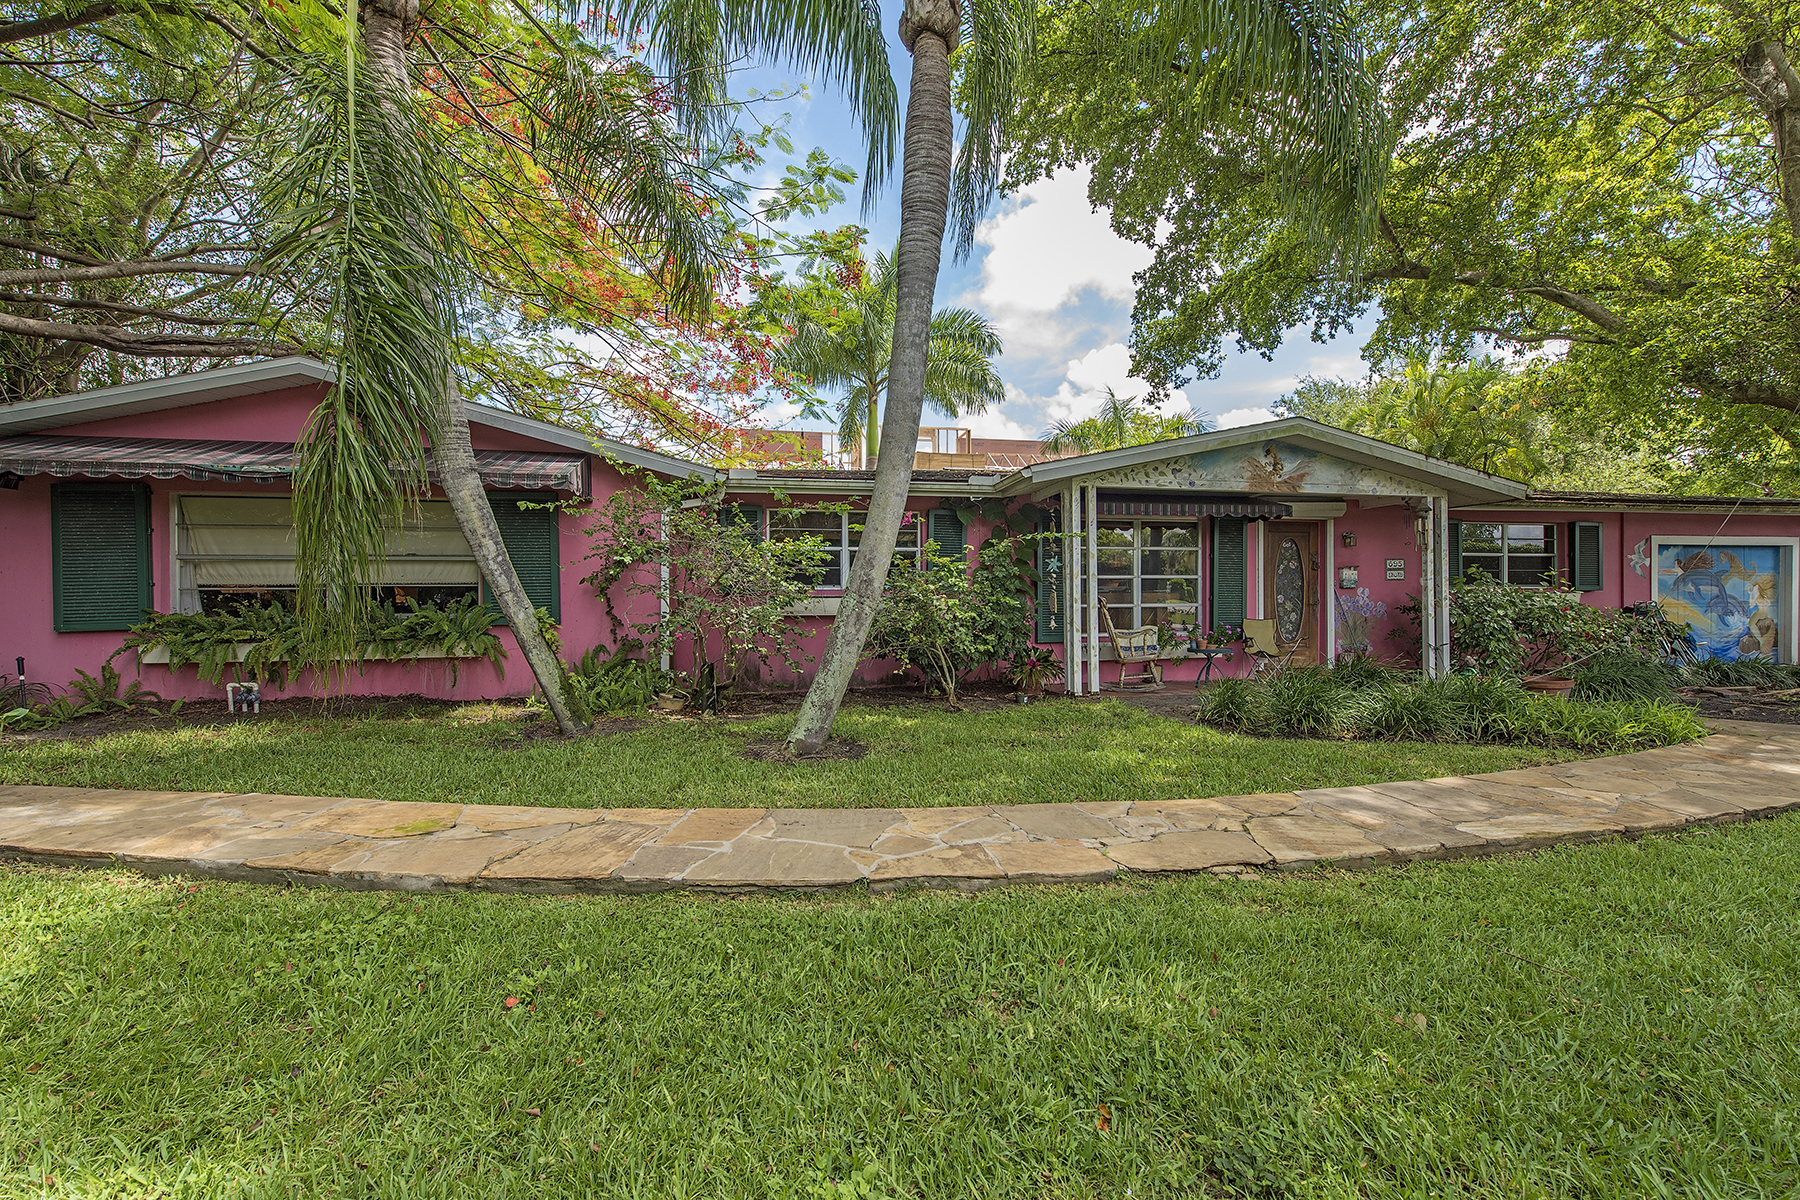 Single Family Home for Sale at OLDE NAPLES 695 Broad Ave S, Naples, Florida 34102 United States